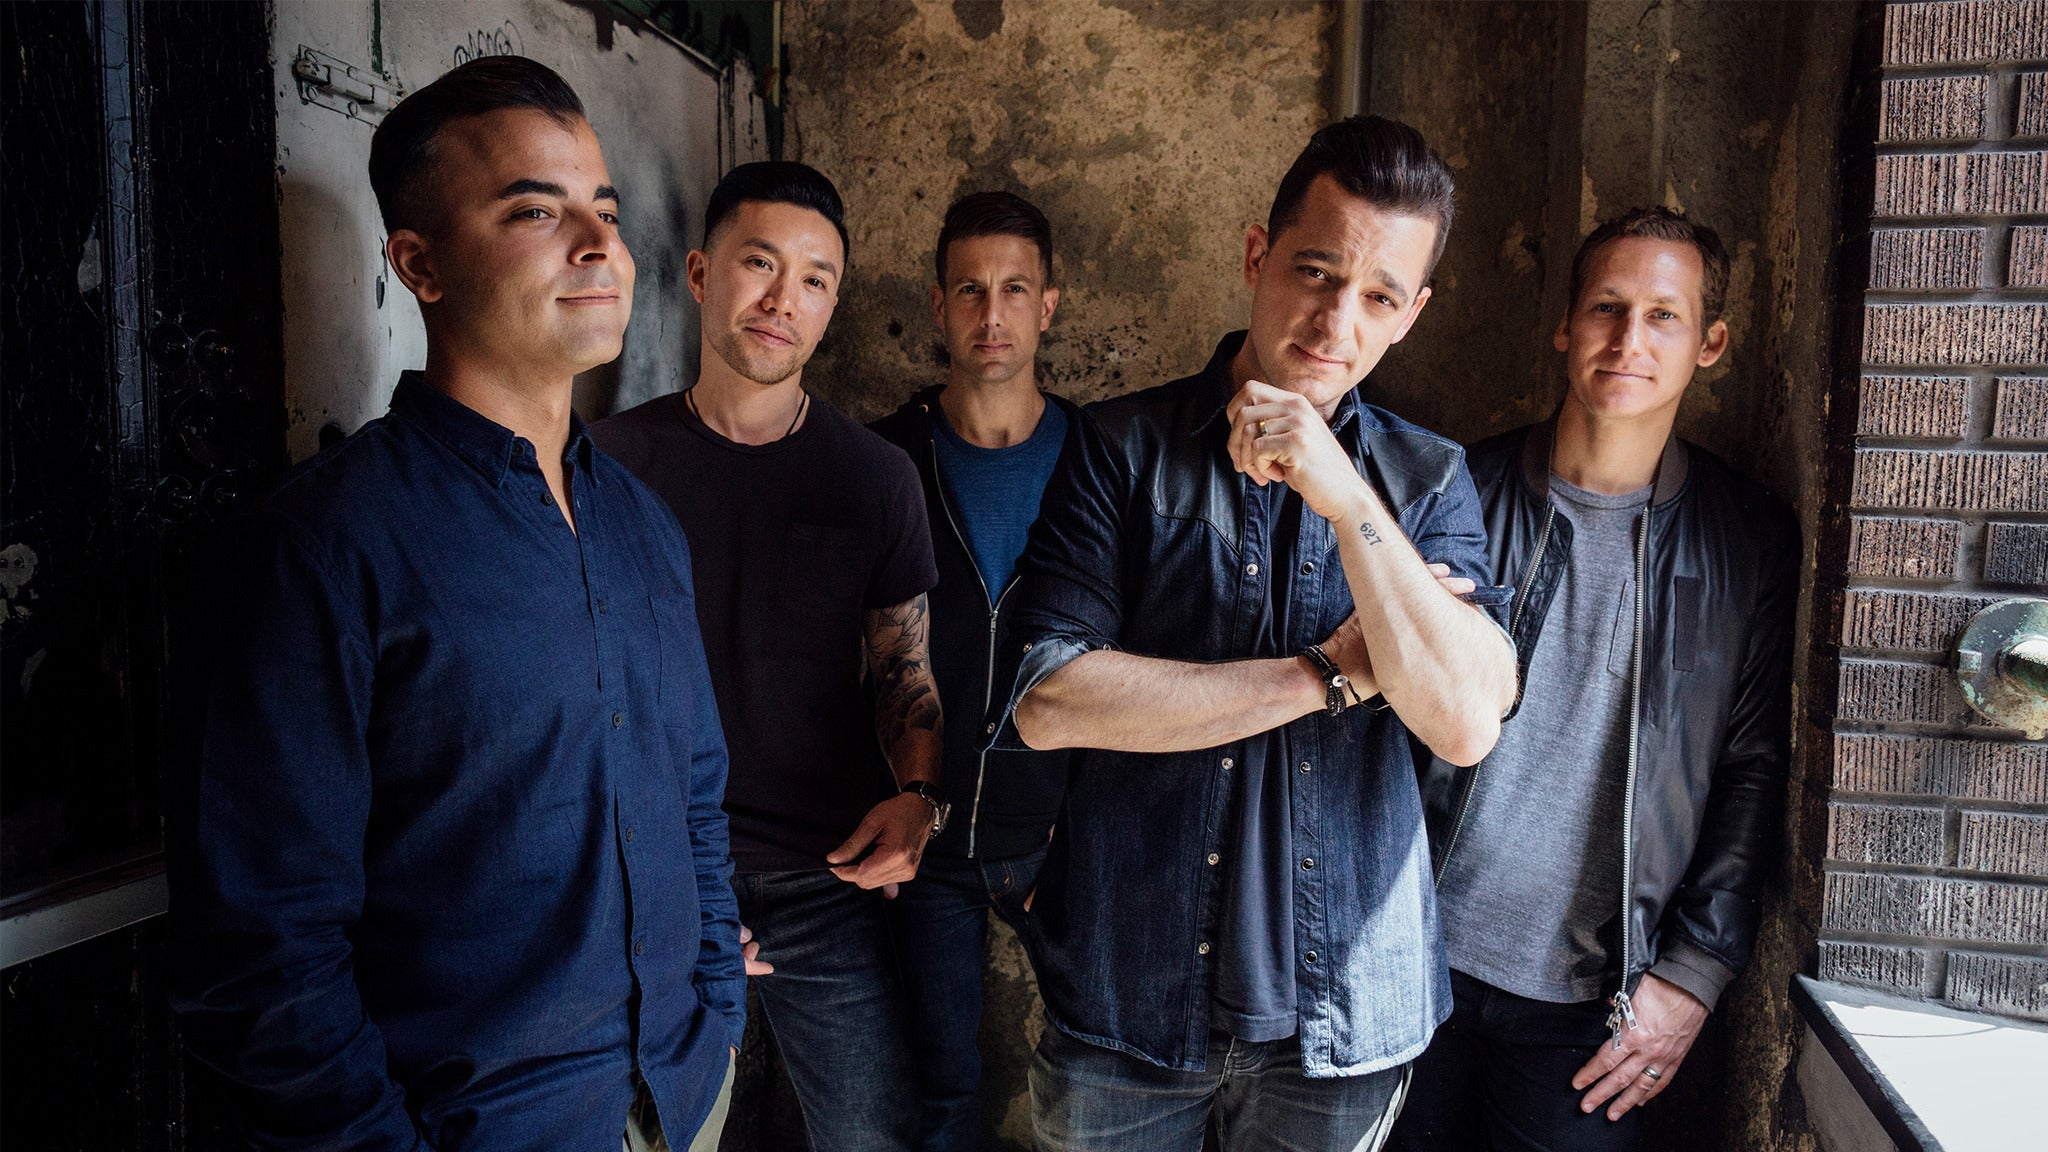 SORRY, THIS EVENT IS NO LONGER ACTIVE<br>O.A.R. - You Pick The Set Tour Florida at Culture Room - Ft Lauderdale, FL 33306